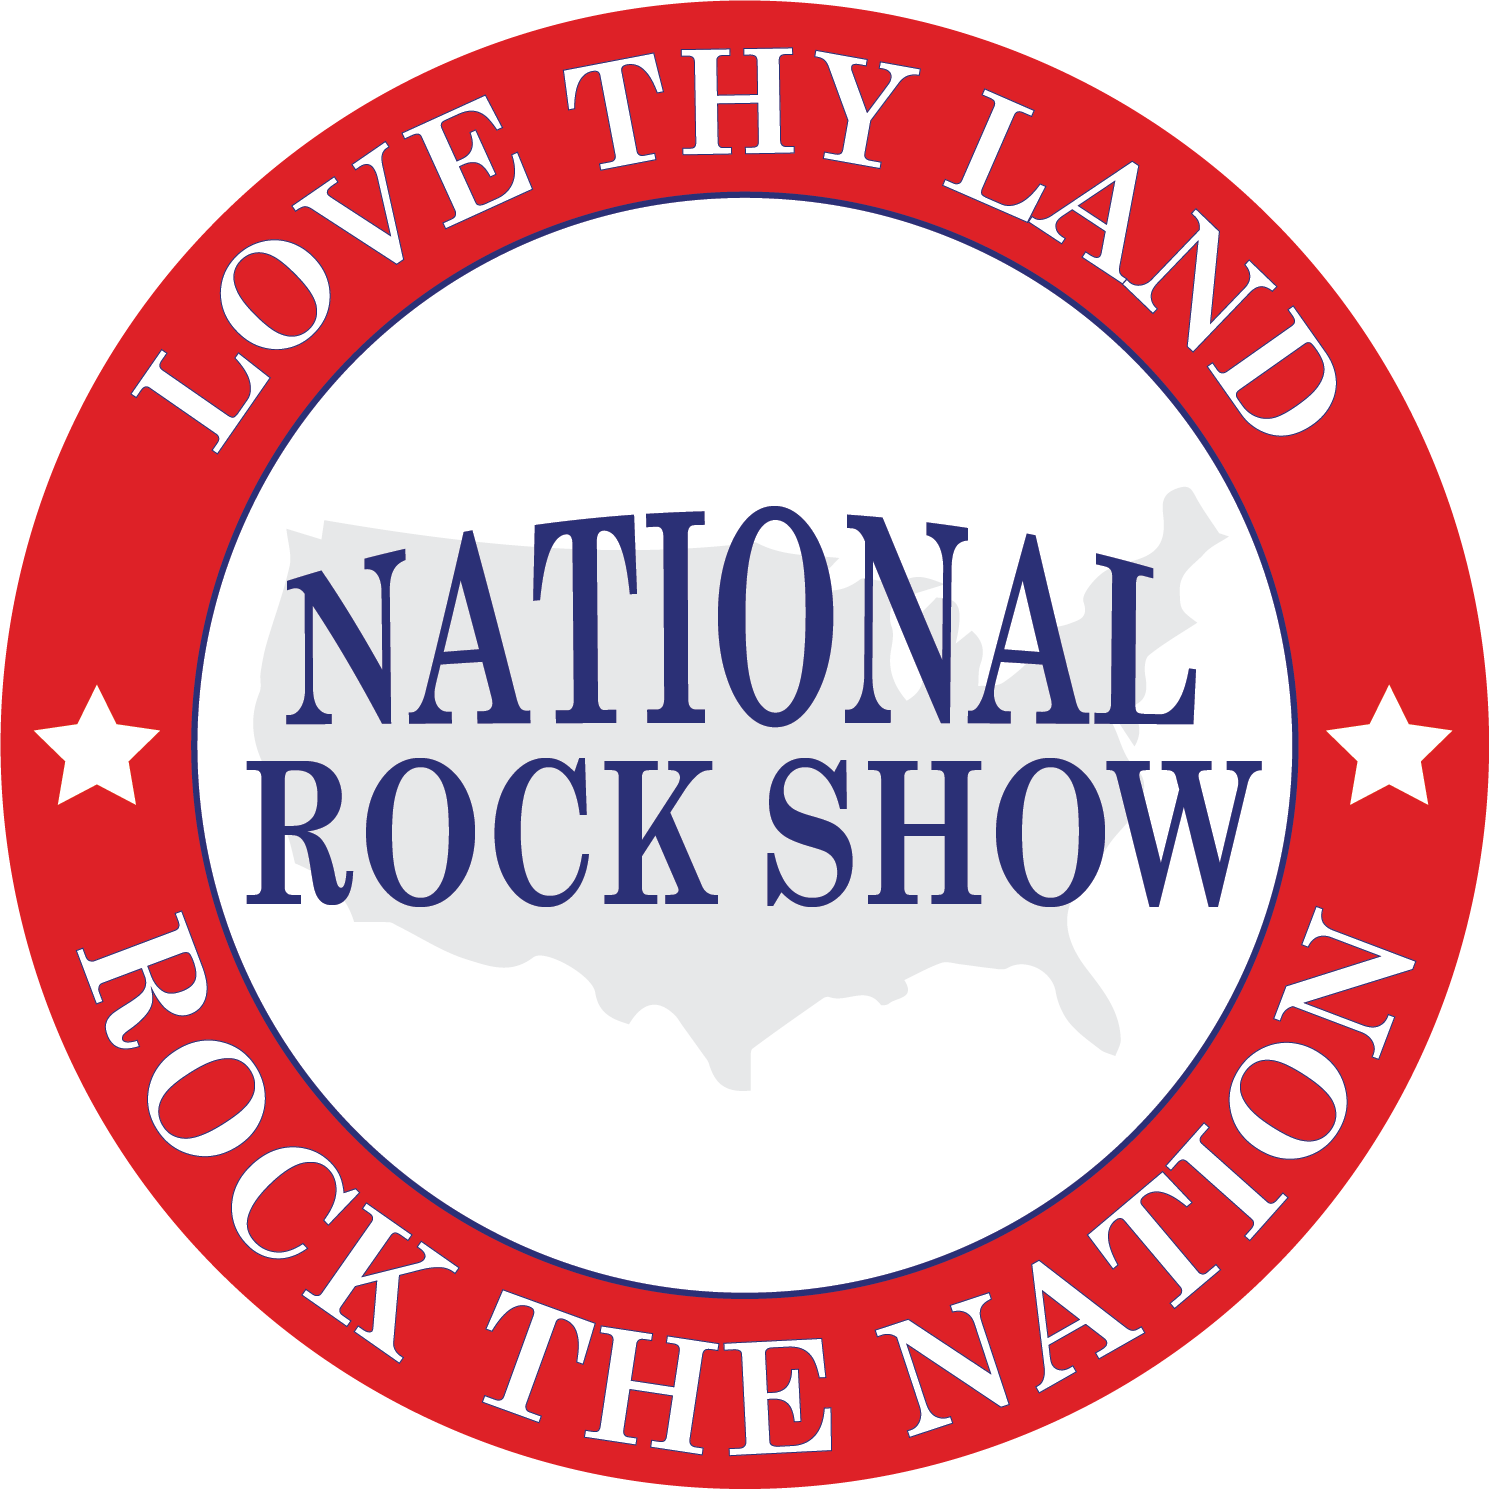 National Rock Show